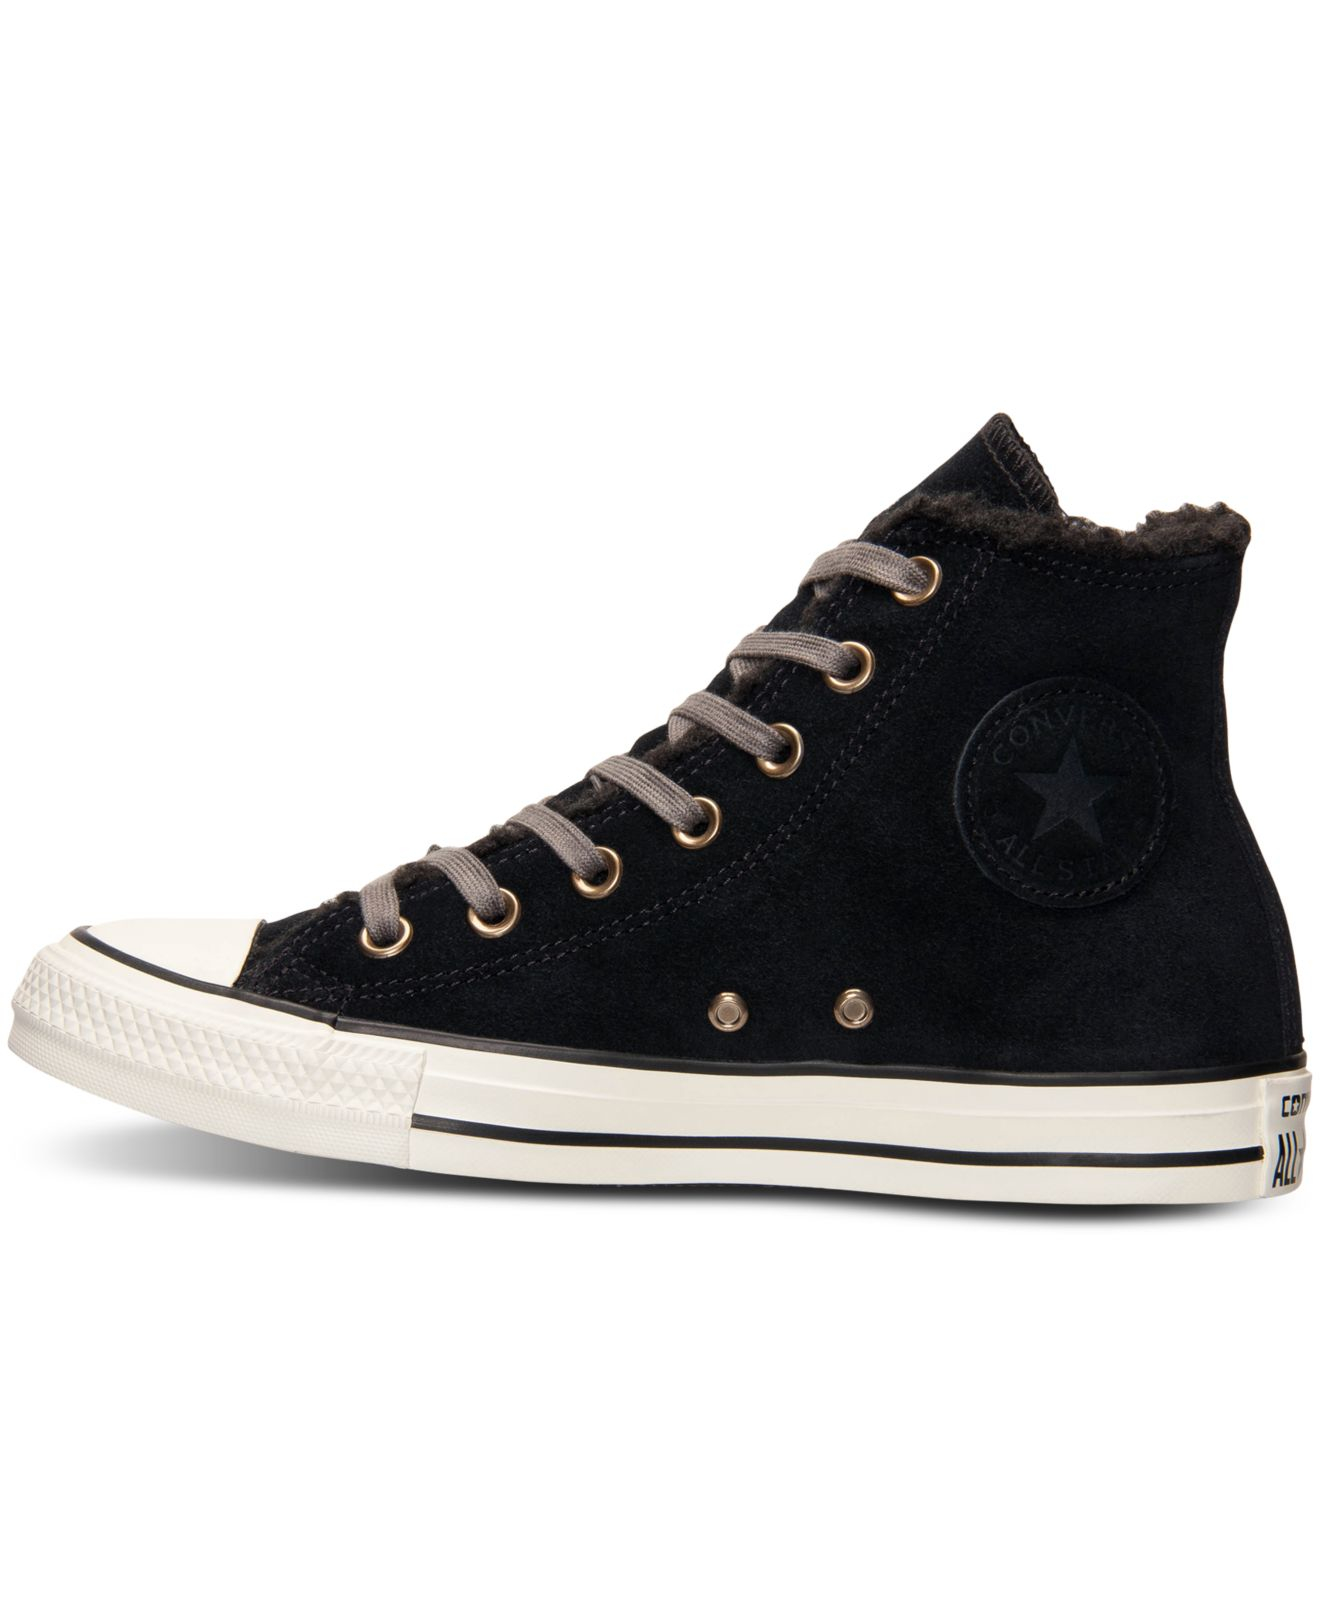 1f70a47980e0bc Lyst - Converse Women s All Star Faux Shearling High Top Platform ...